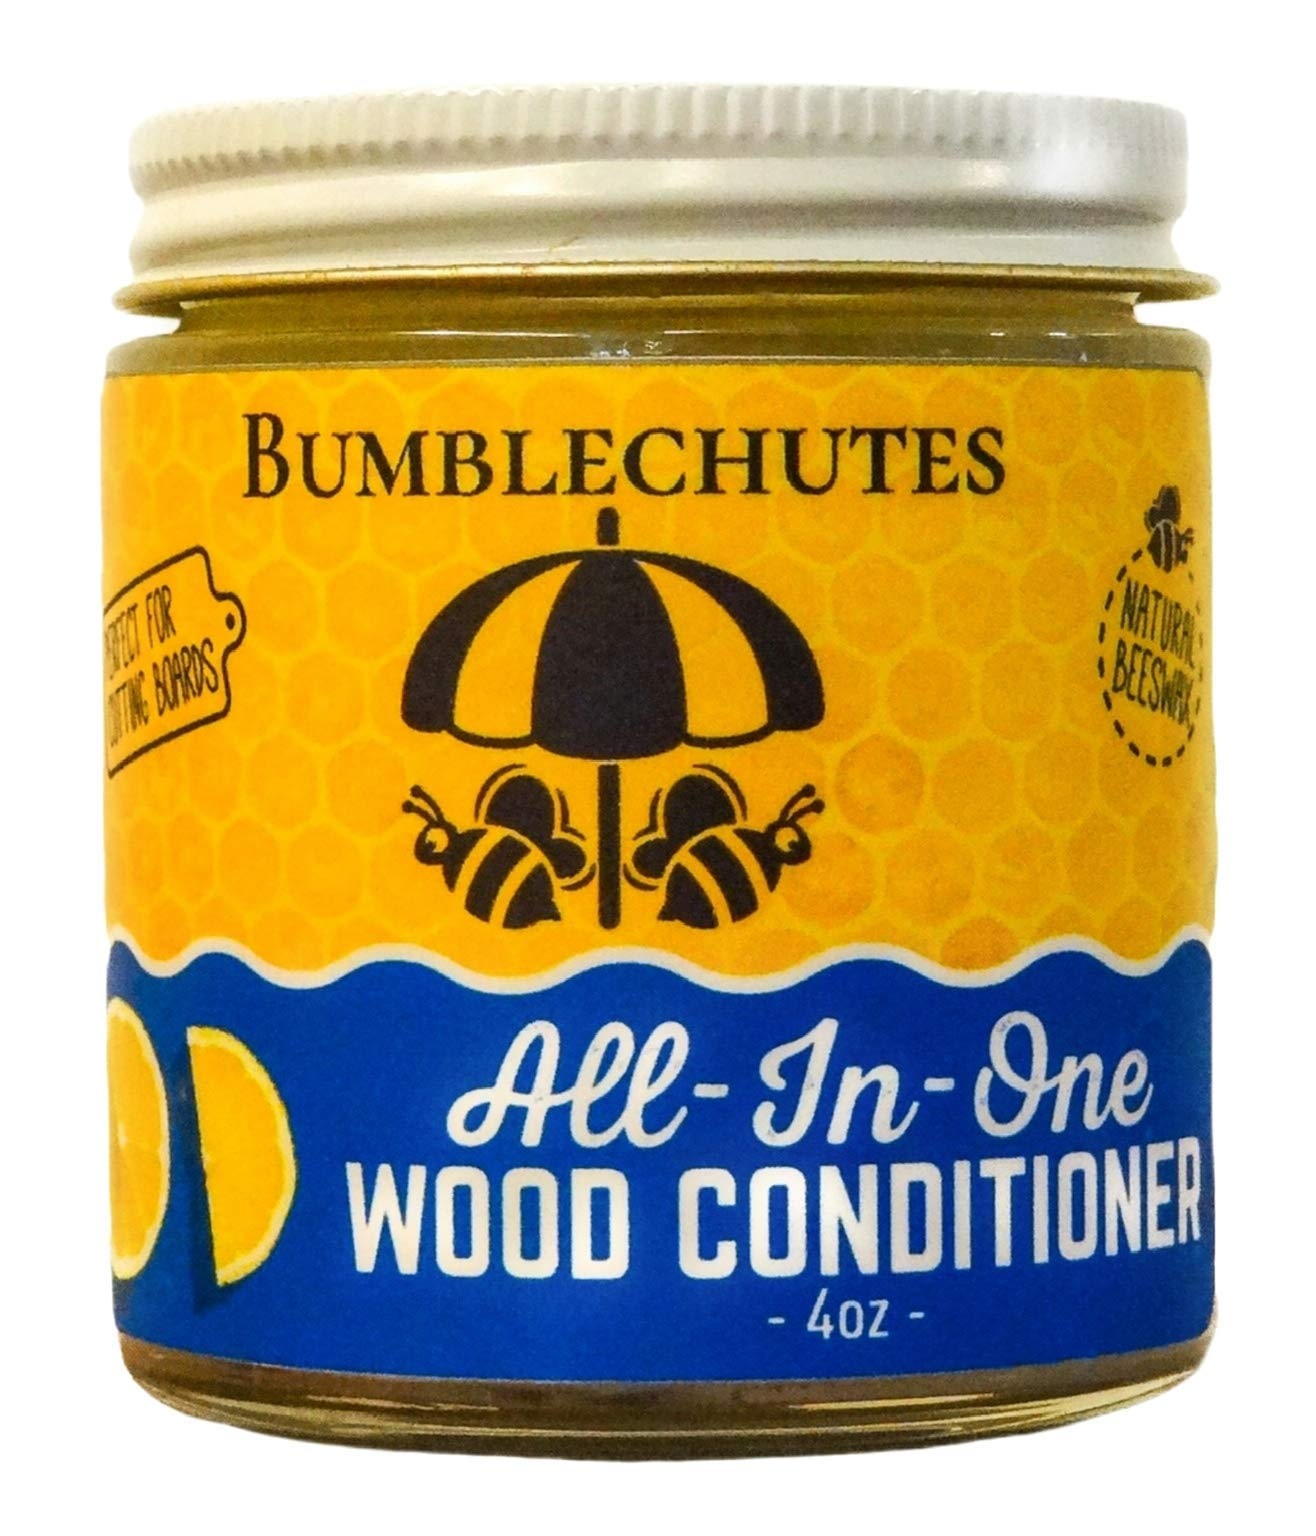 All-In-One Wood Conditioner